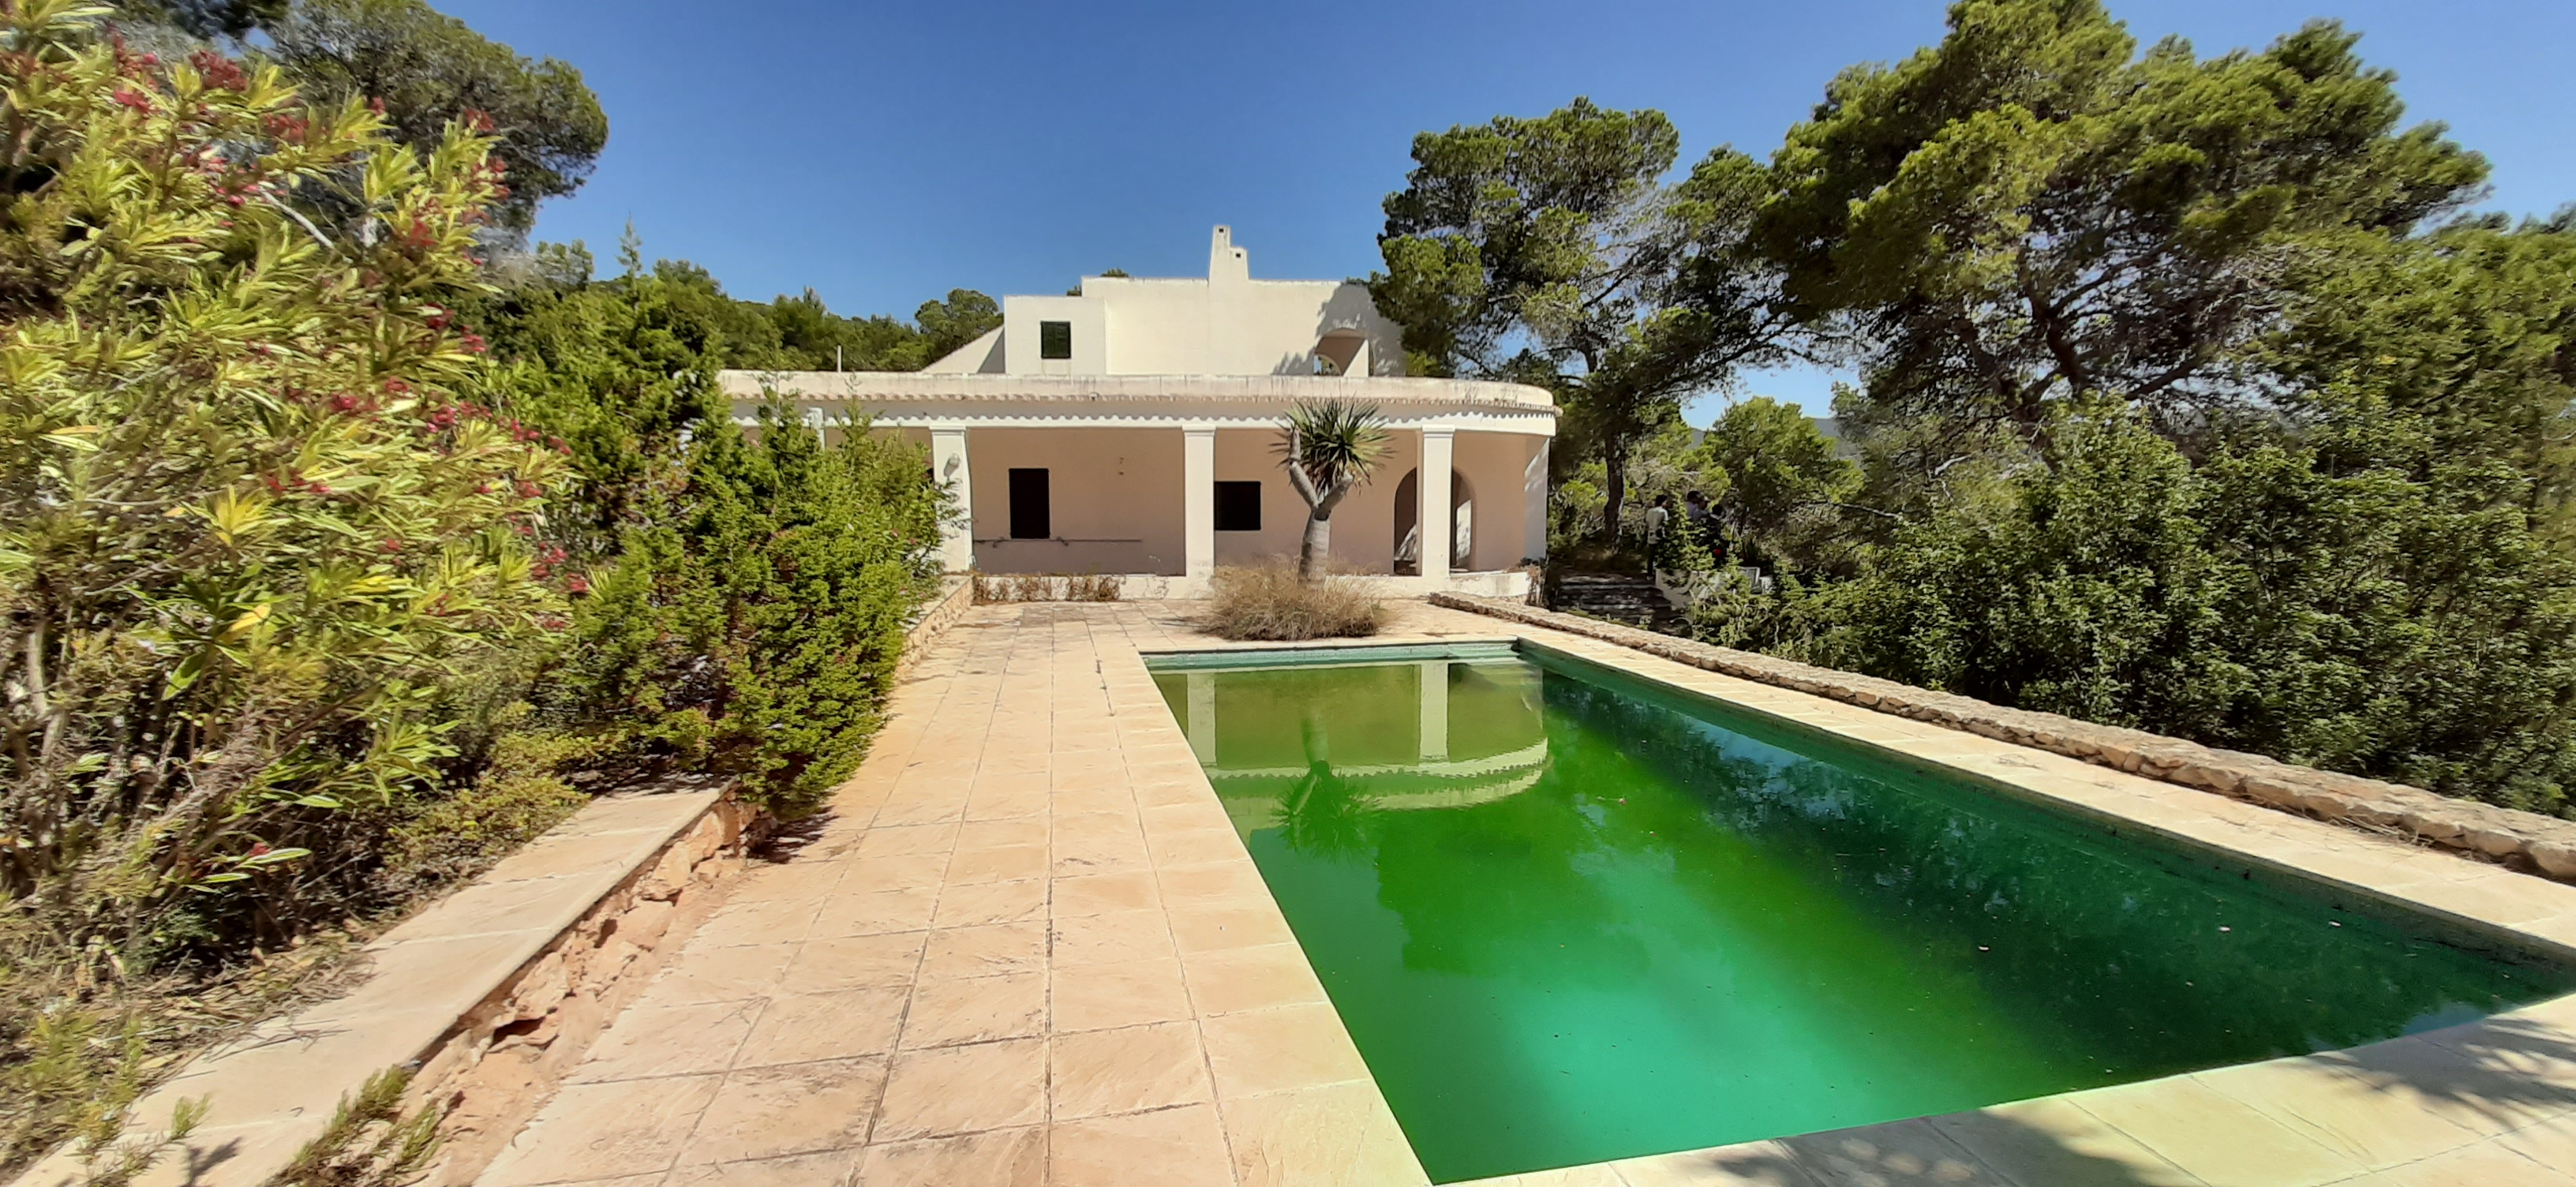 villa reformation project for sale